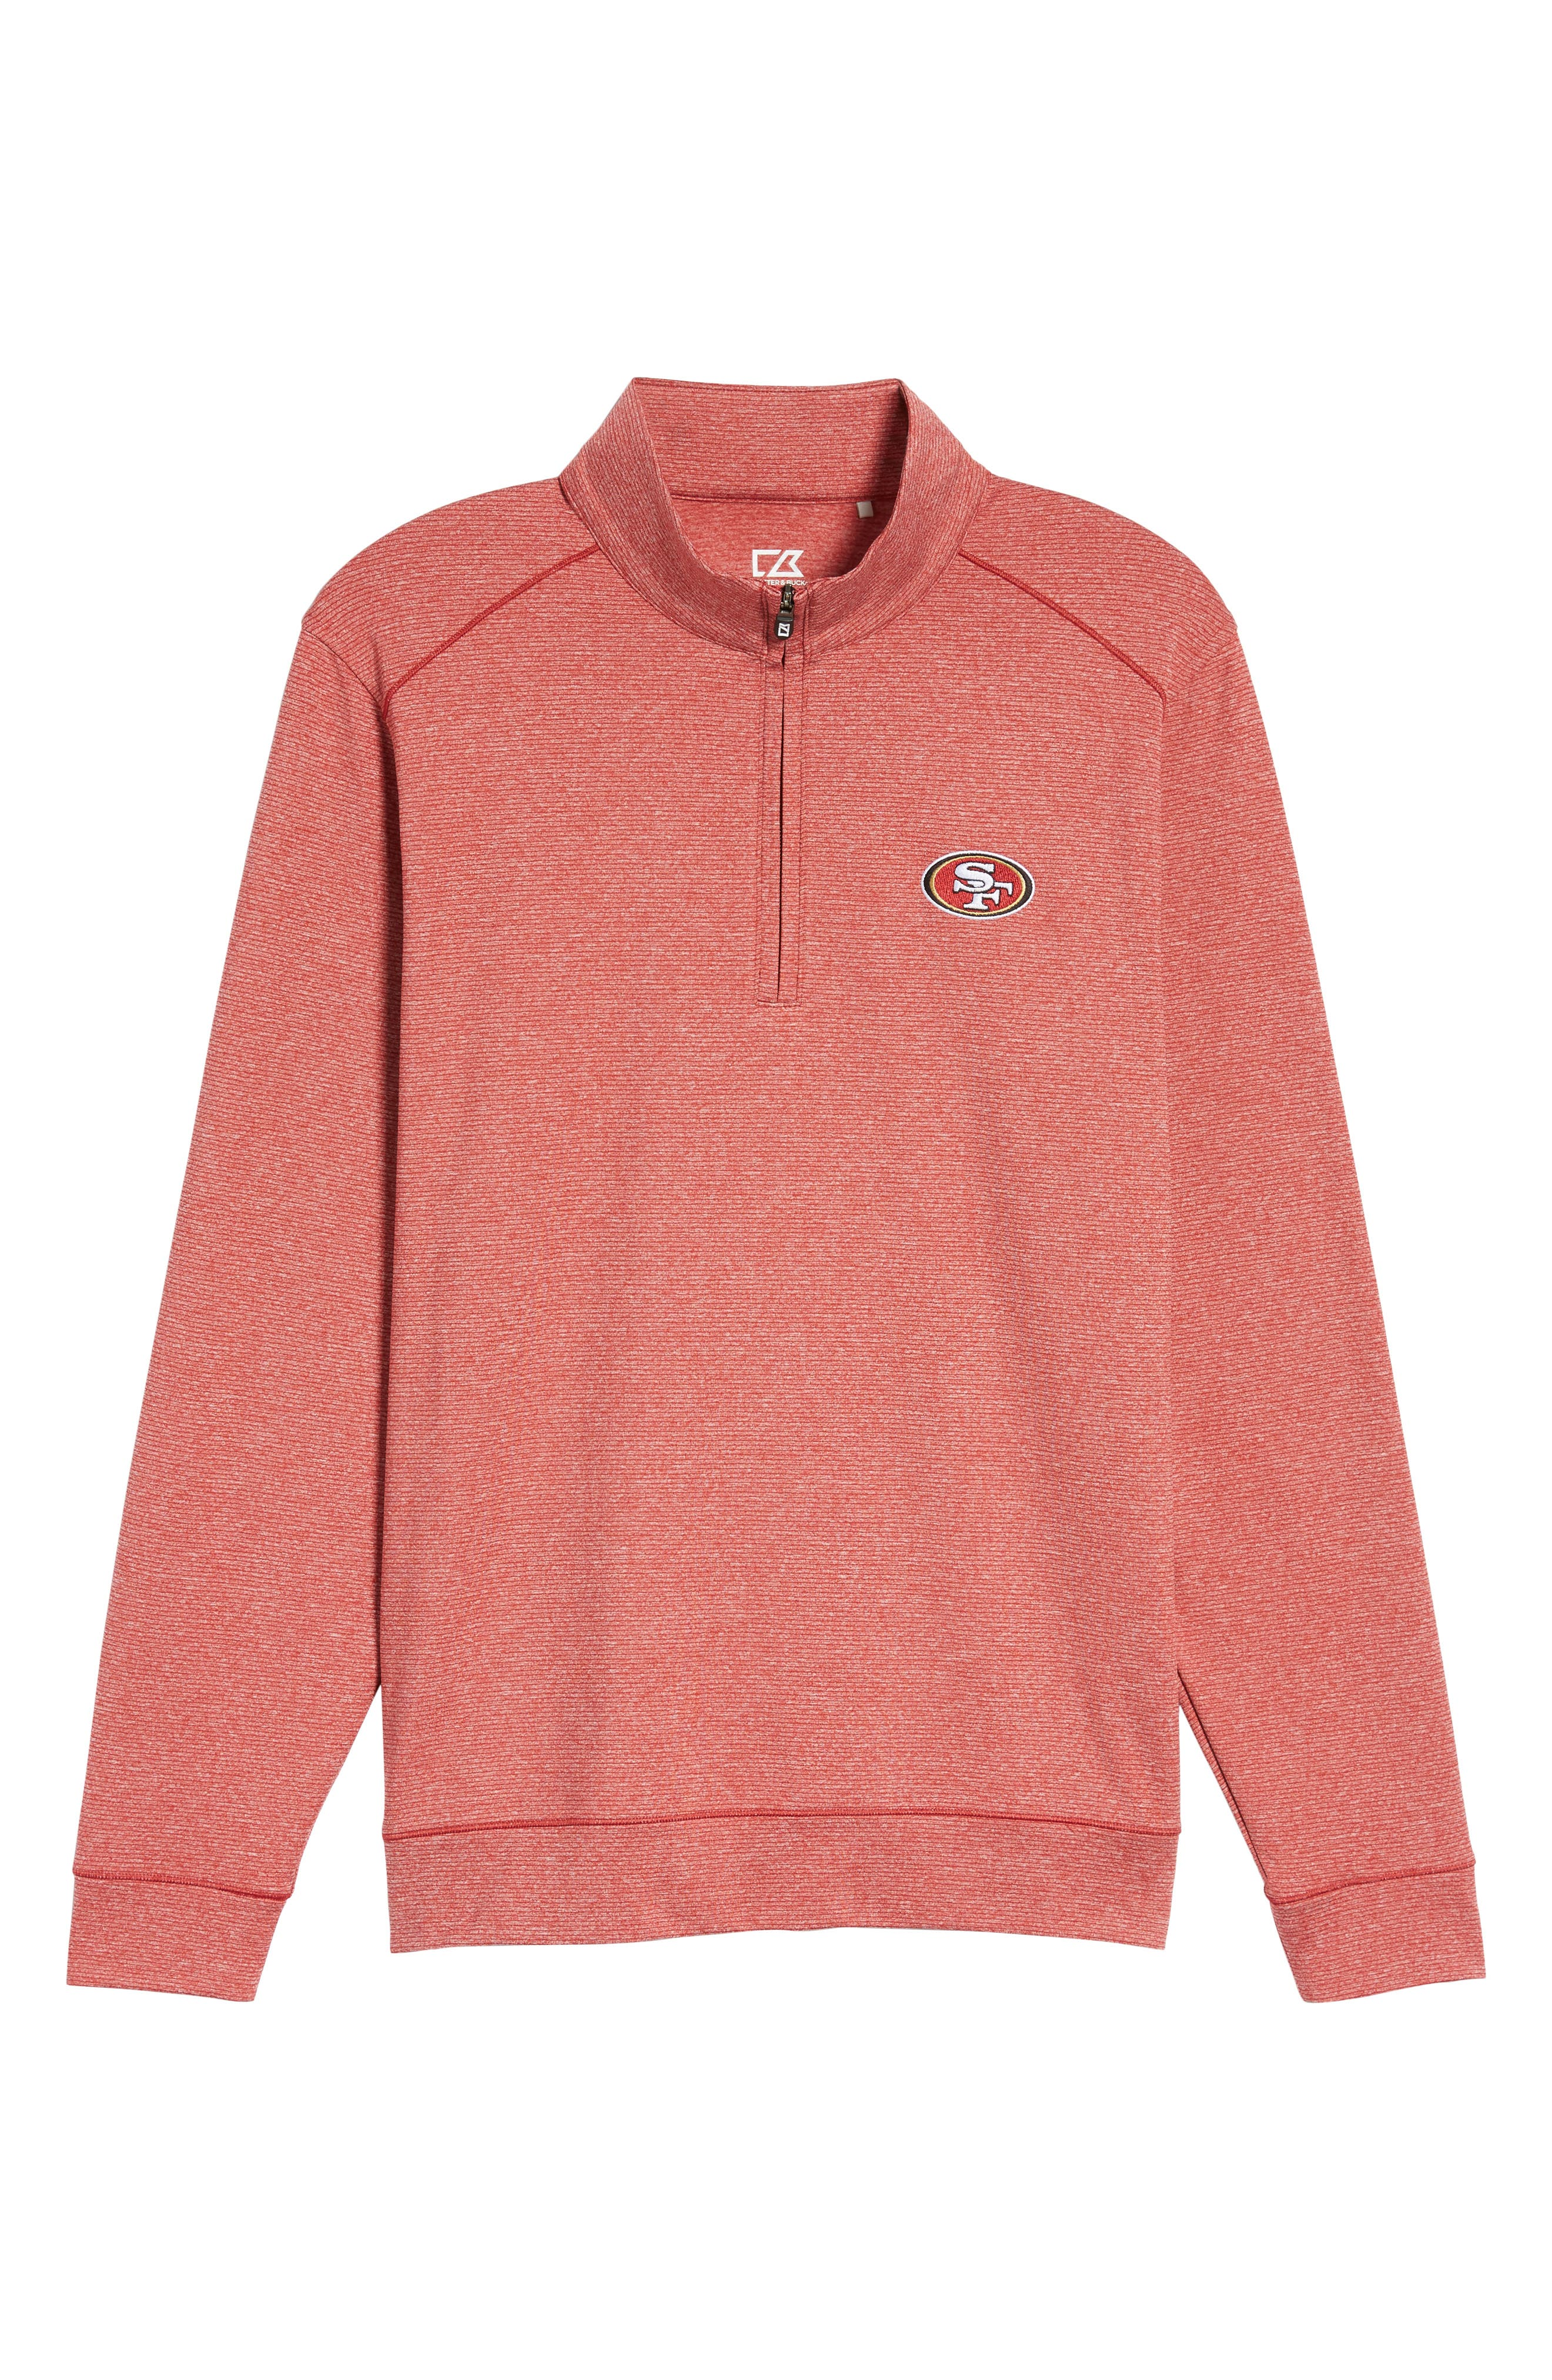 Shoreline - San Francisco 49ers Half Zip Pullover,                             Alternate thumbnail 6, color,                             Cardinal Red Heather